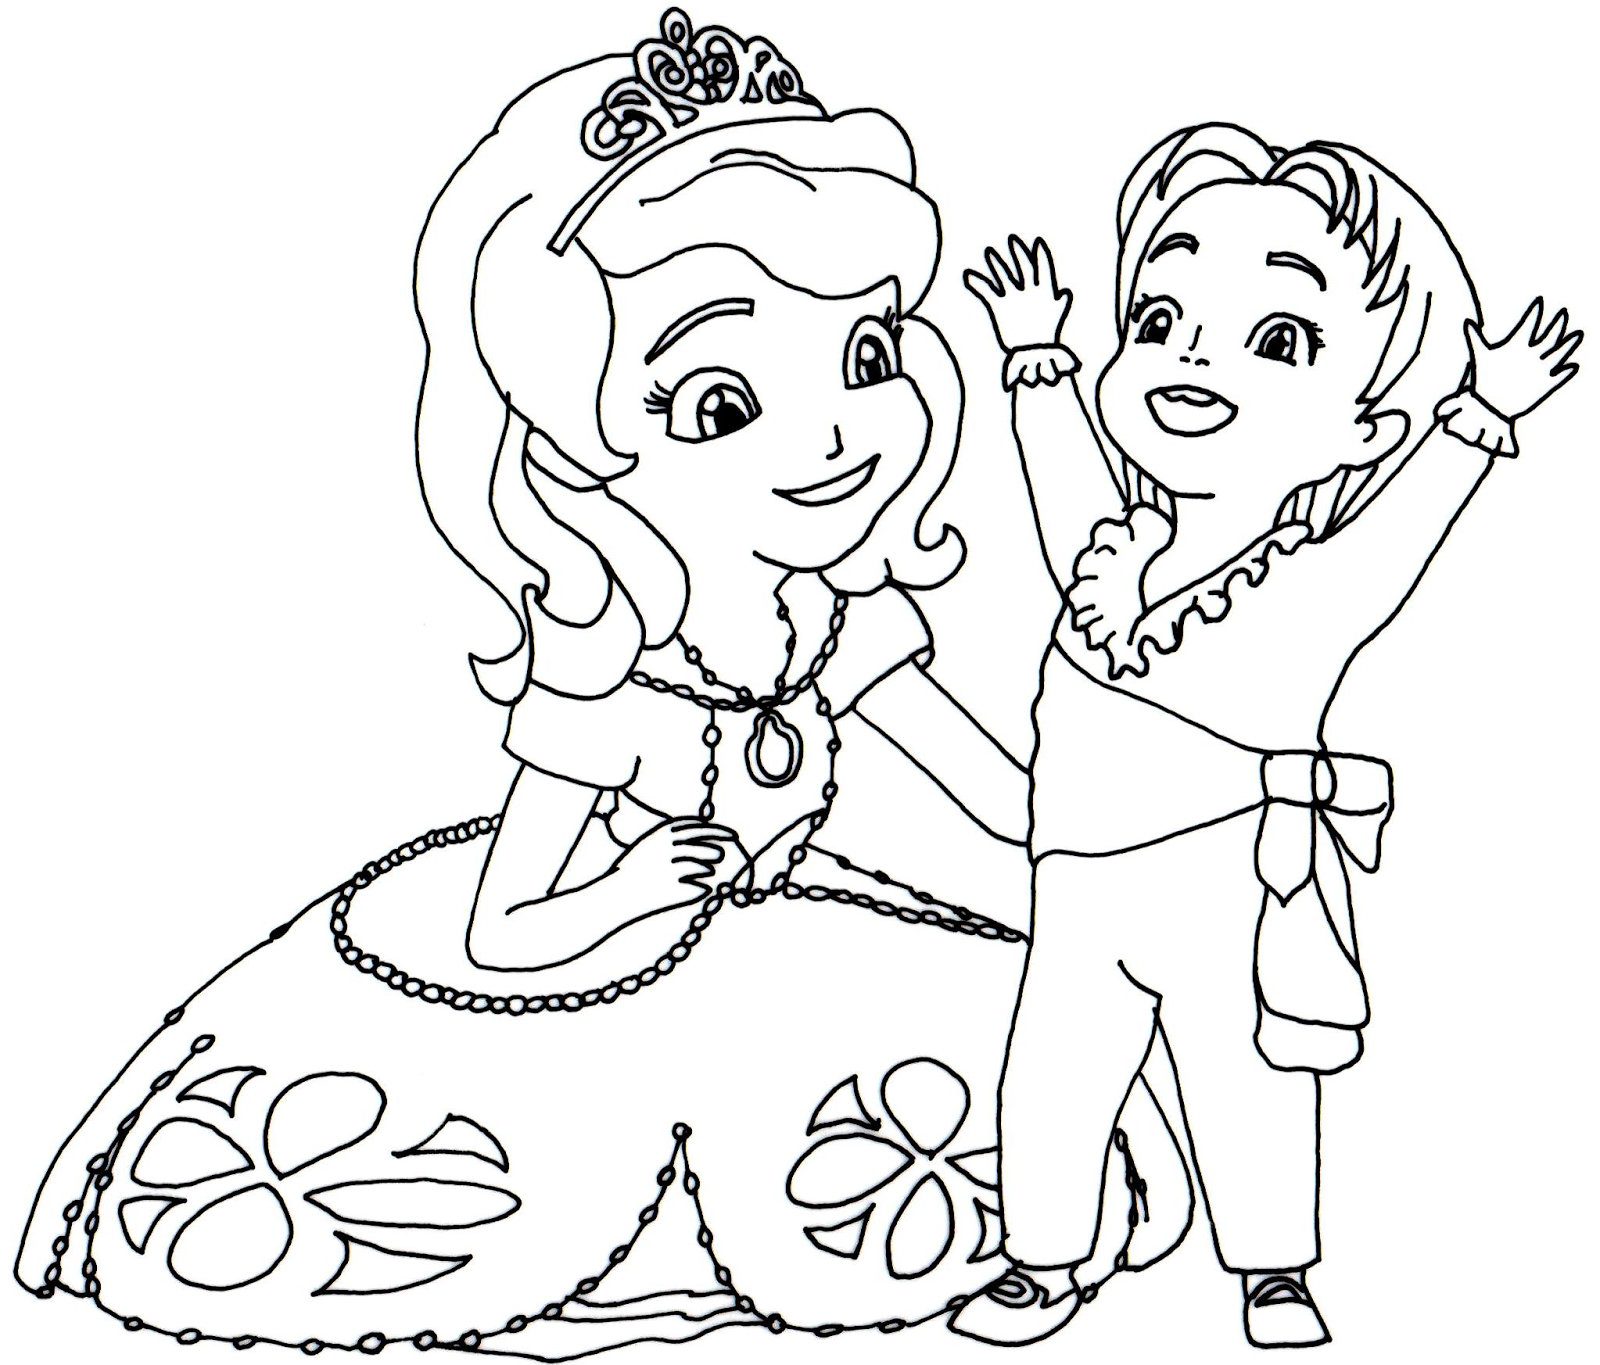 sofia the first coloring pages to print disney coloring pages on pinterest coloring pages - First Coloring Book